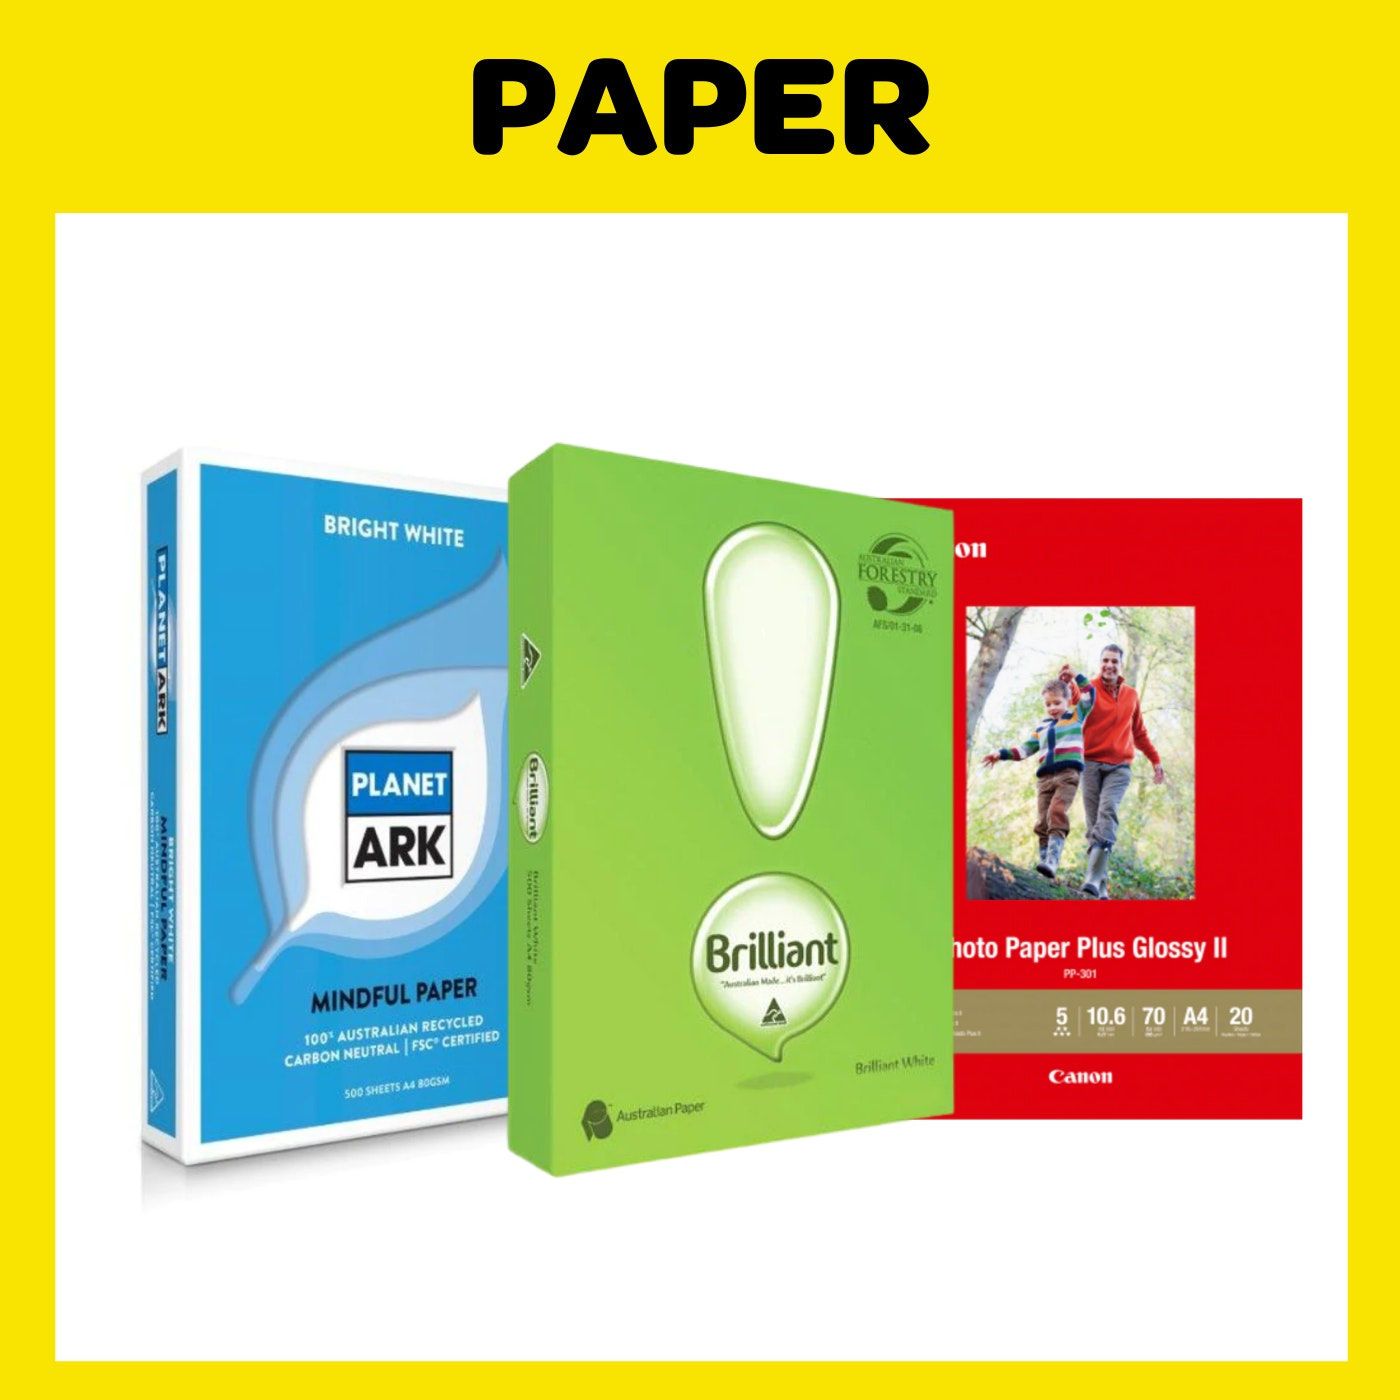 Paper Prducts